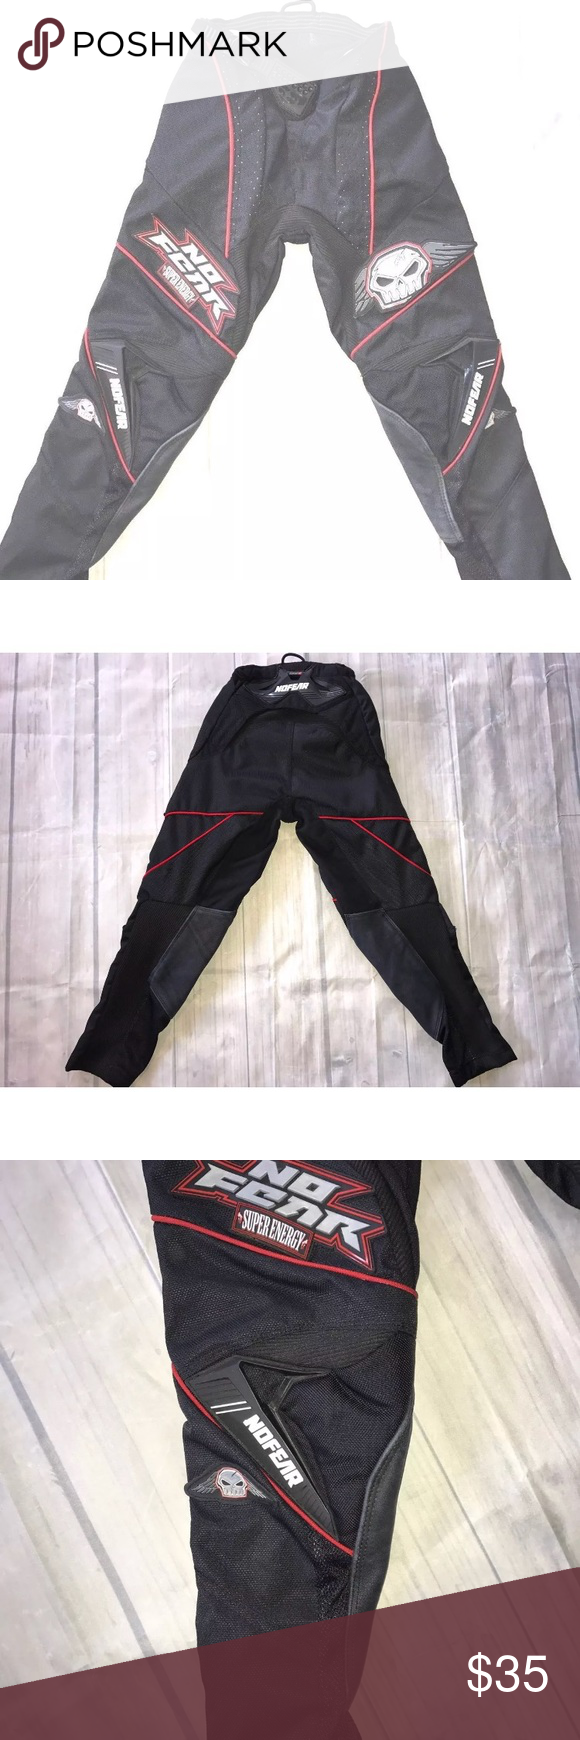 No Fear Rogue Boys Motorcross Padded Pants Sz 22 No Fear Rogue Series Boys Motorcycle Padded Pants Size 22 Black No Tears Stains Or R Pants Fashion Shopping